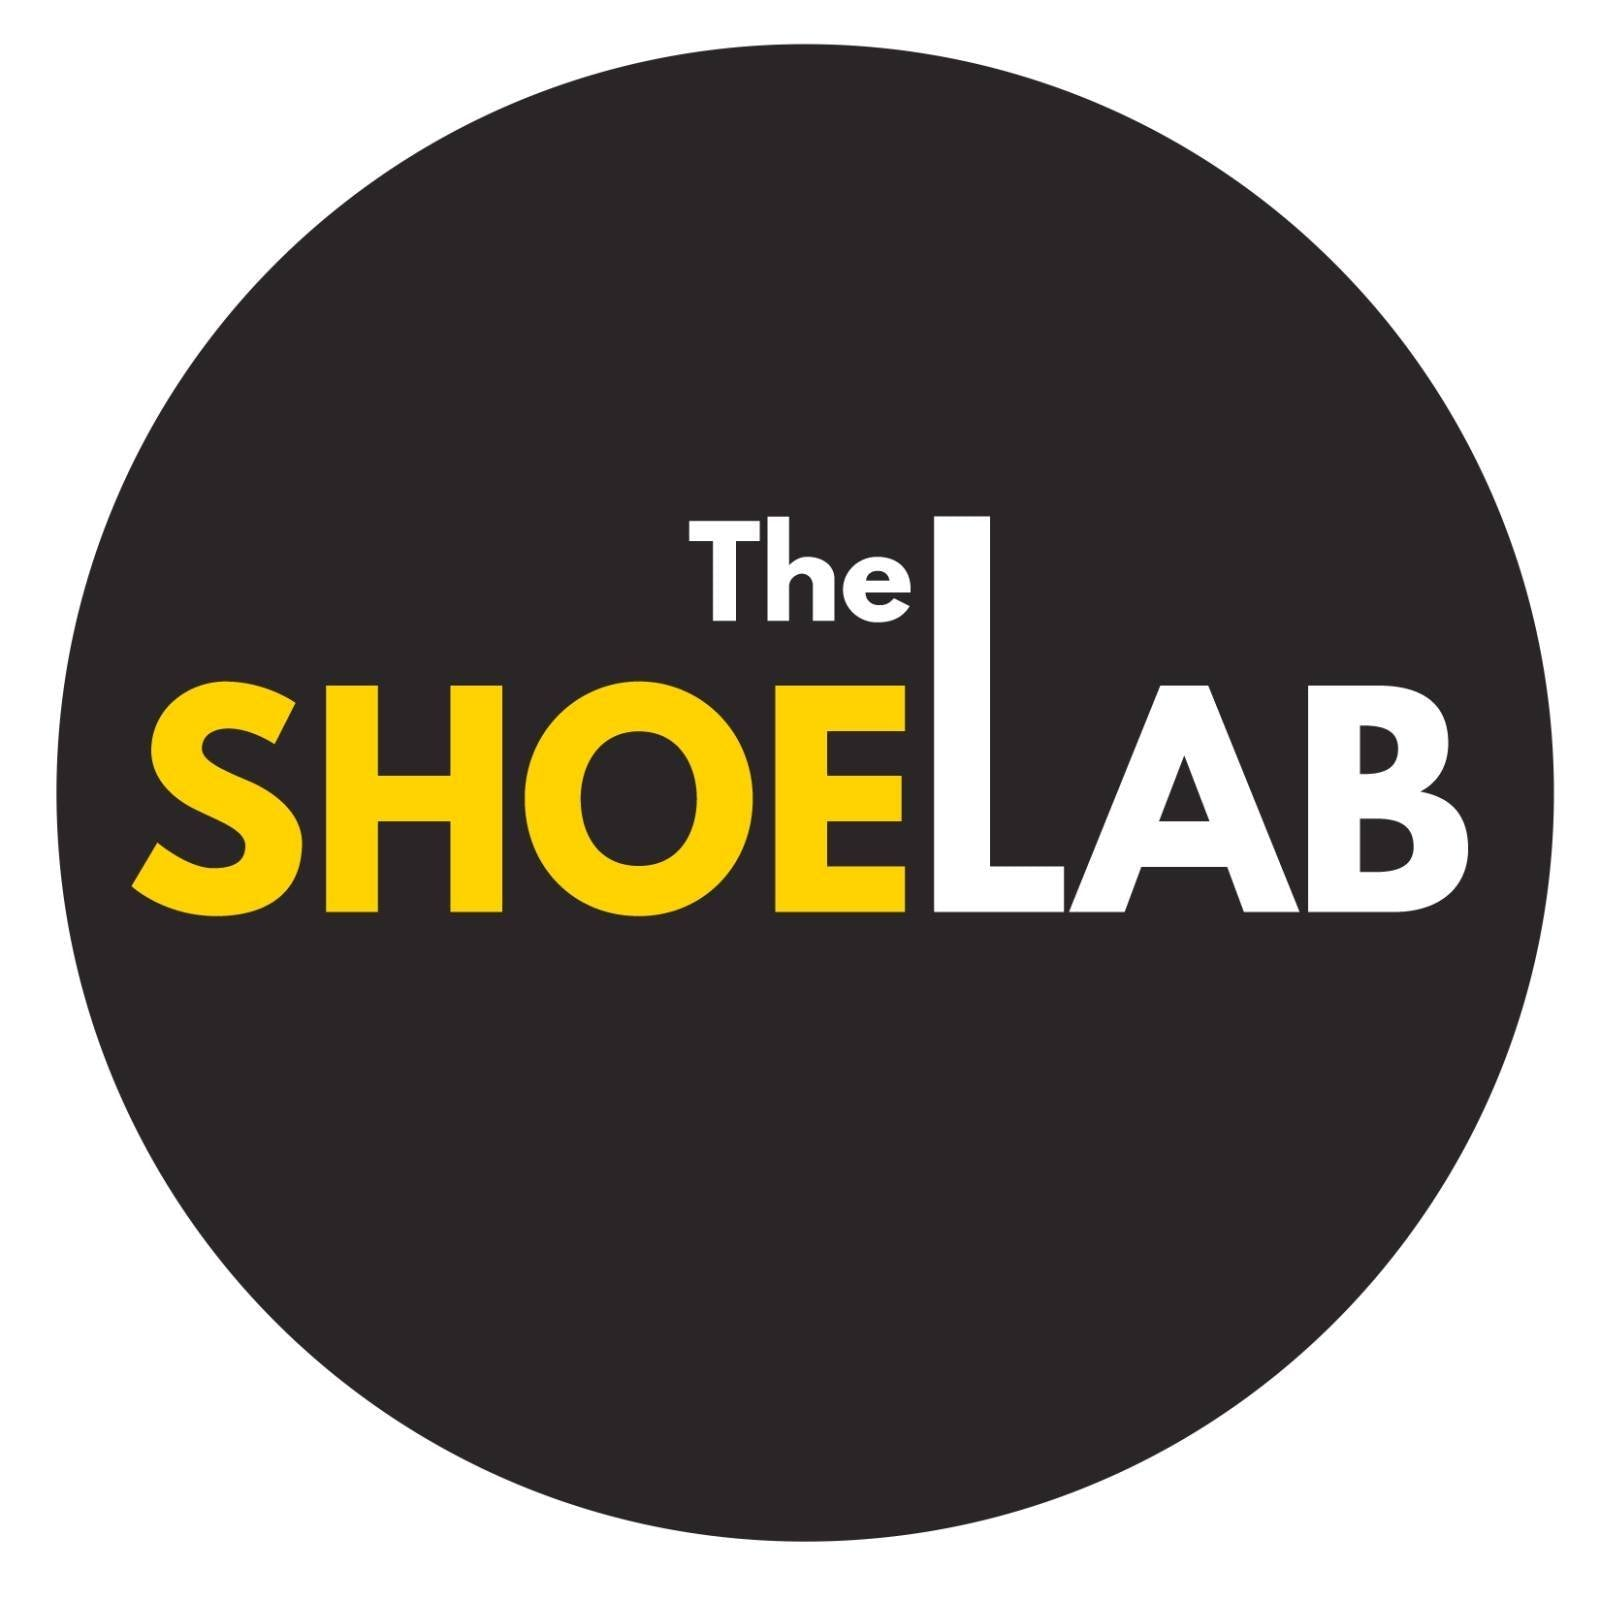 The ShoeLab